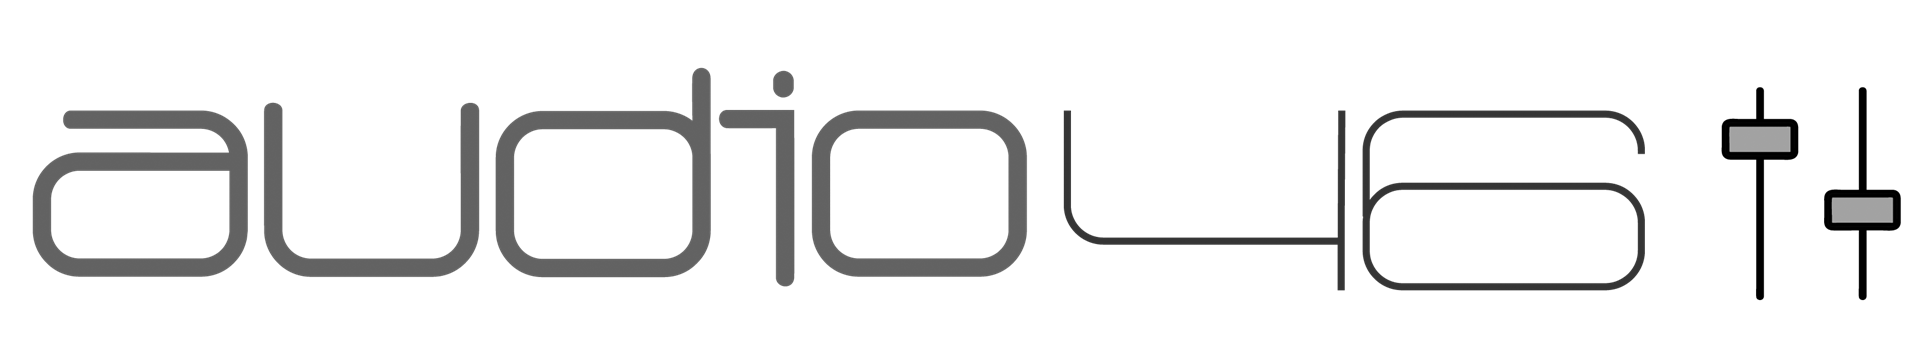 Audio 46 logo bw